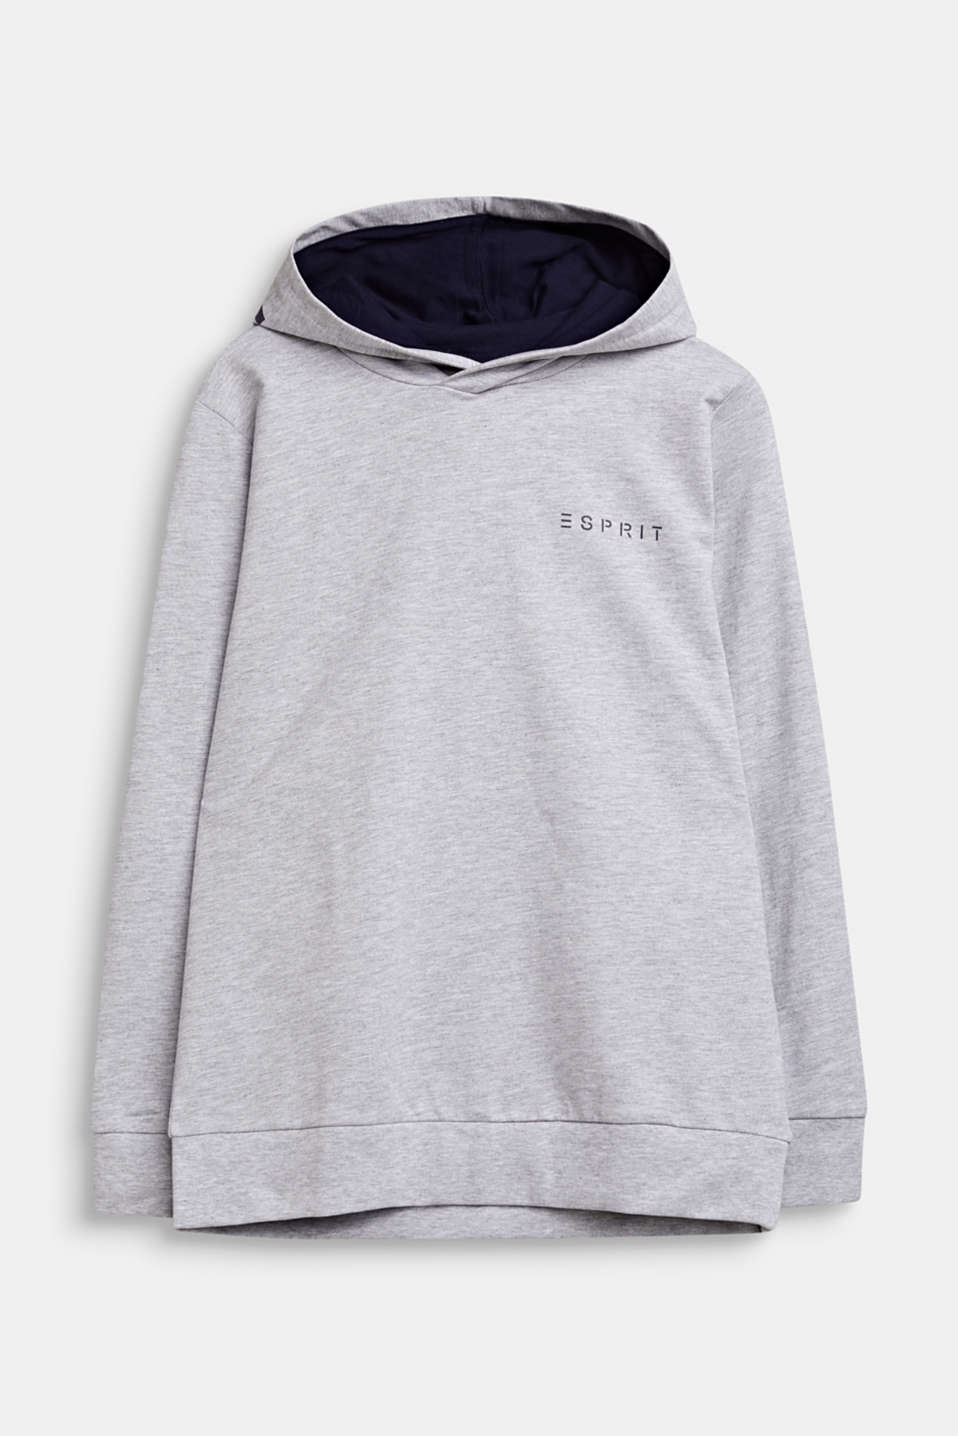 Sweatshirt hoodie with print, 100% cotton, LCHEATHER SILVER, detail image number 0